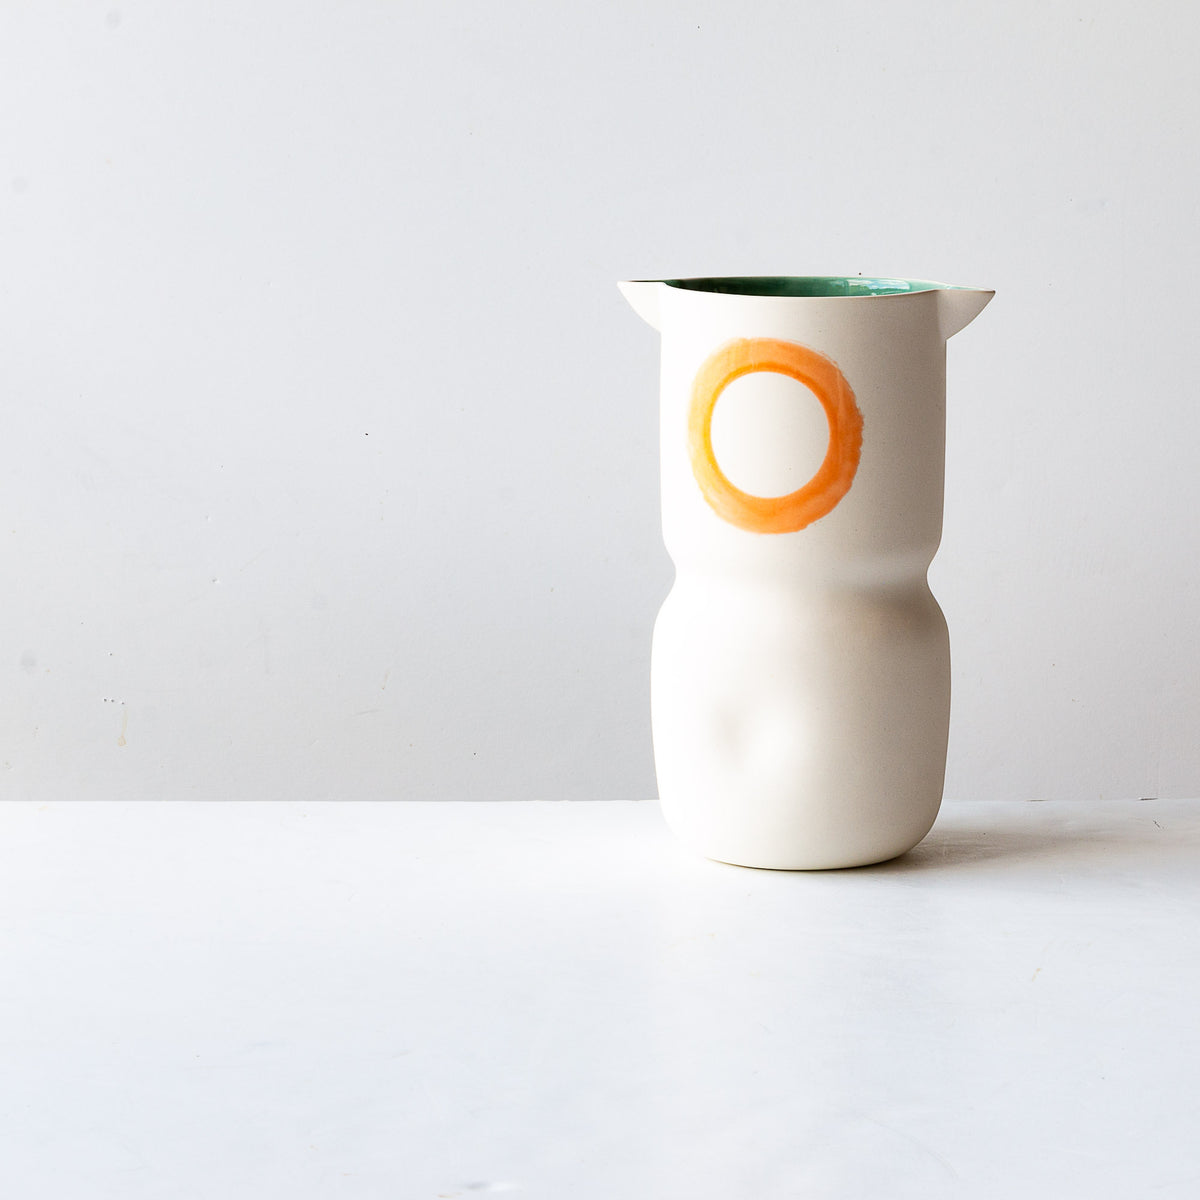 Front View - Handmade Porcelain Vase / Wine Cooler - Sold by Chic & Basta